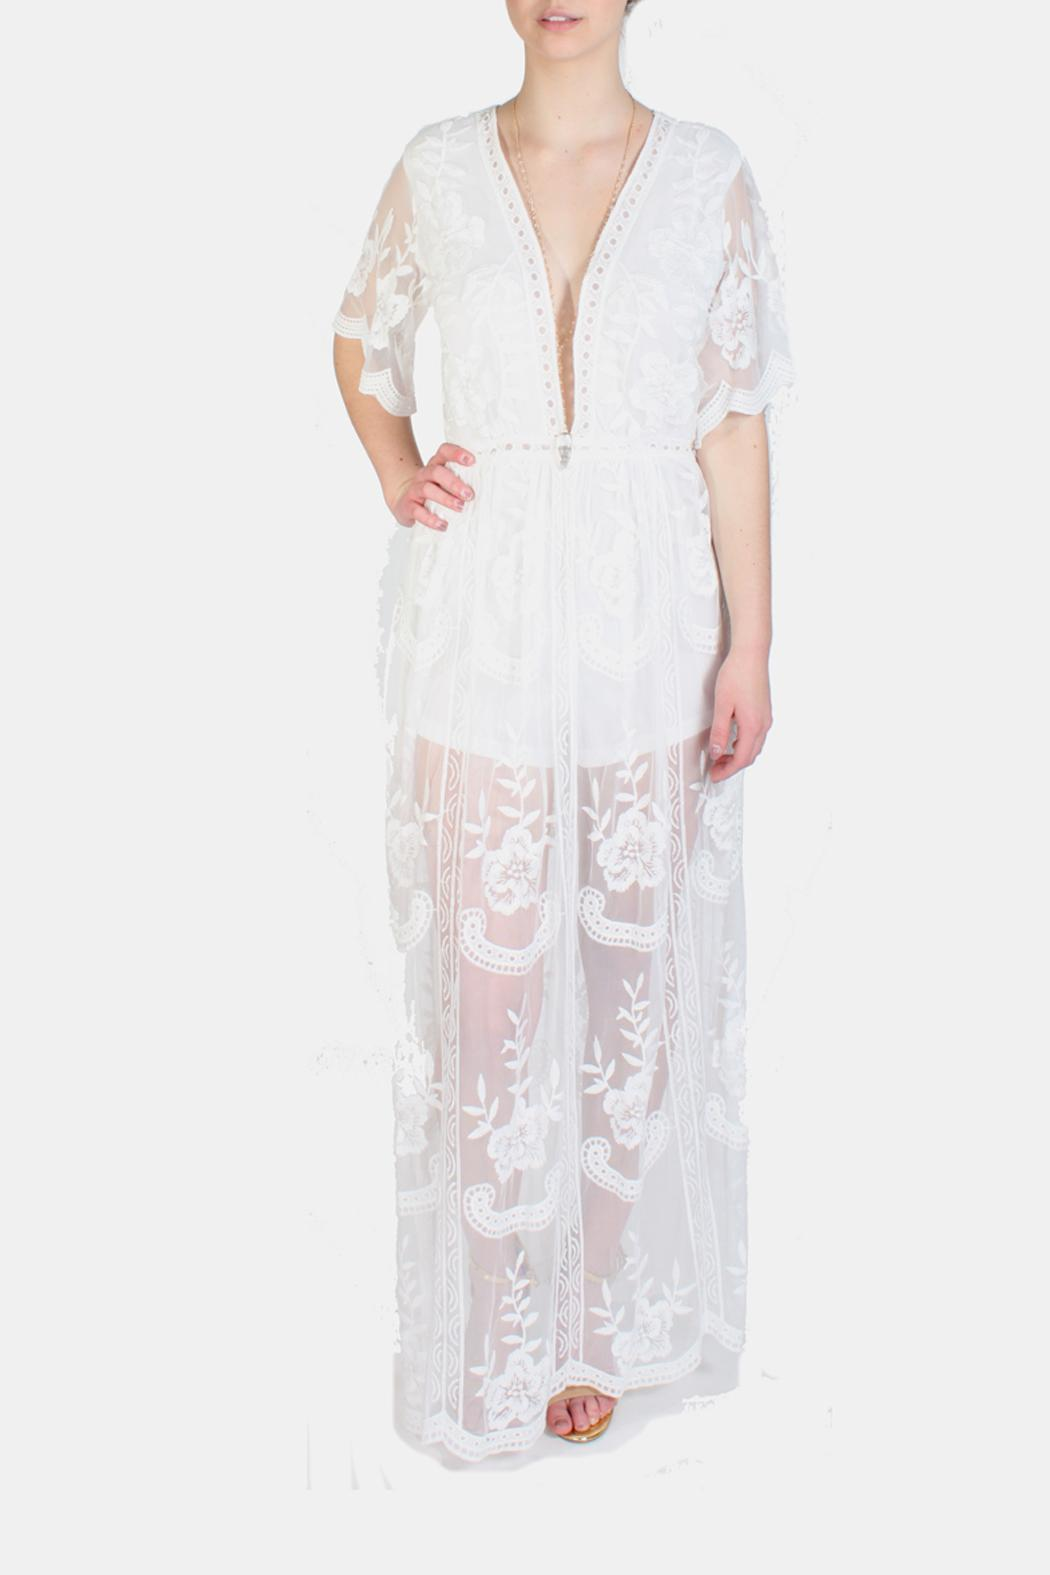 eae7b34d5cb Honey Punch Butterfly Lace White Romper from Los Angeles by Goldie s ...